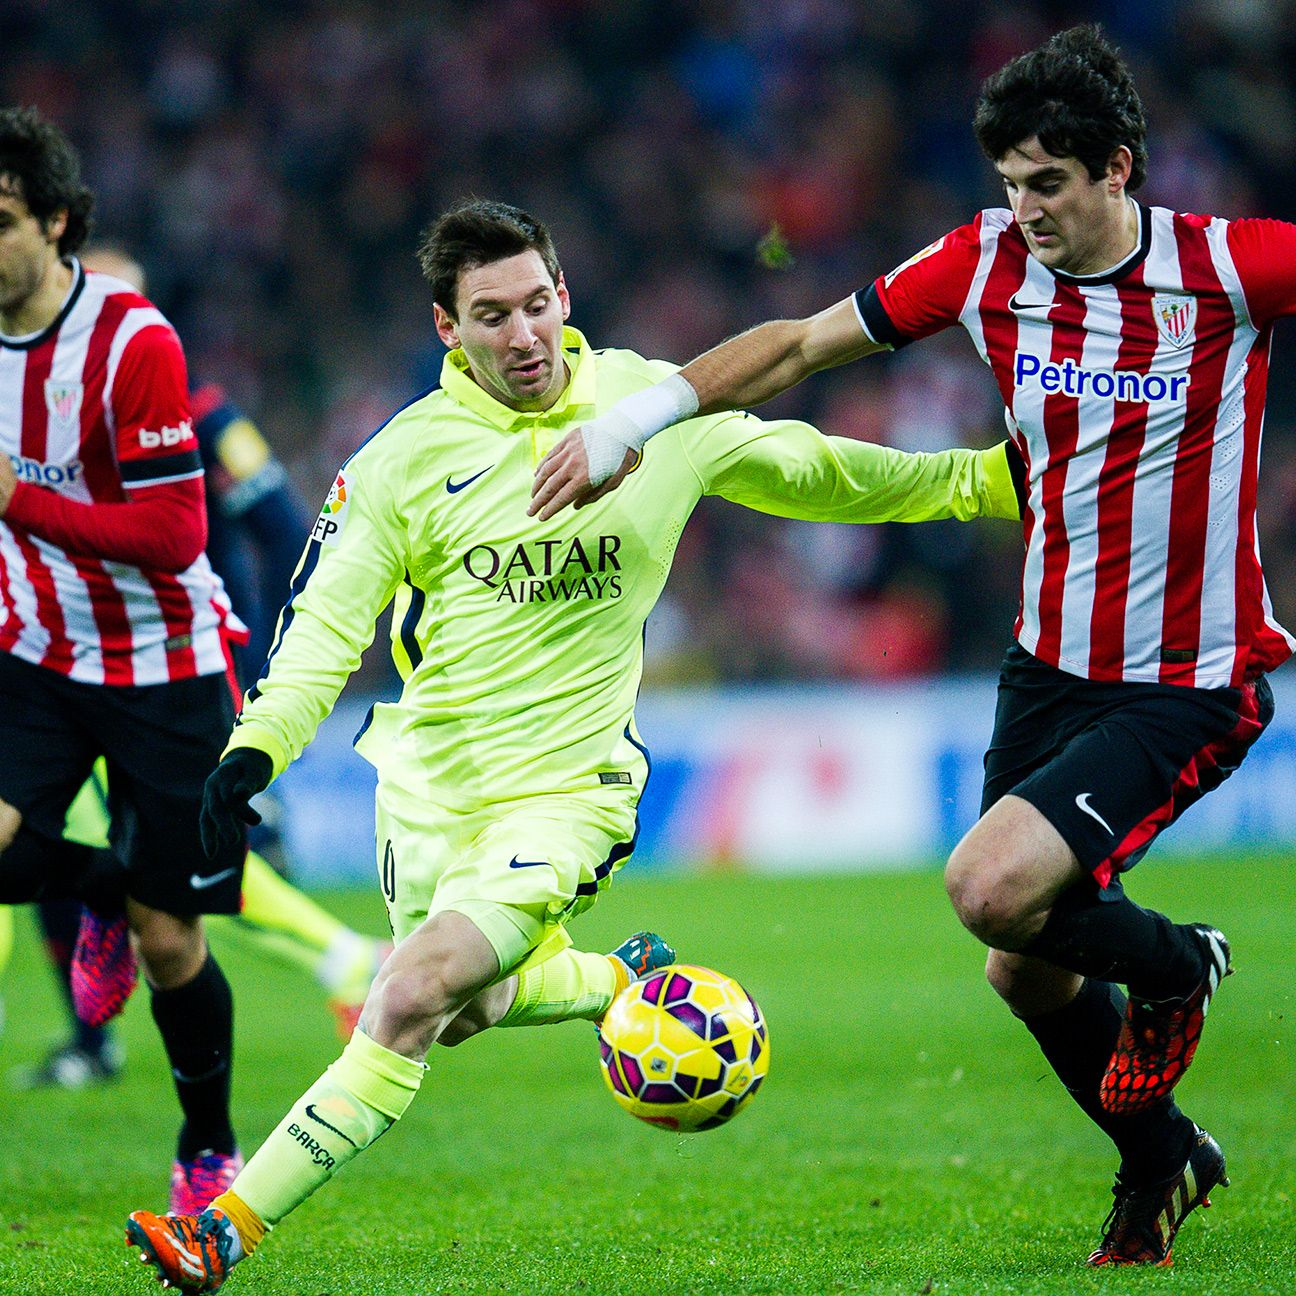 Lionel Messi and Barcelona dominated Athletic Bilbao in their two league meetings in 2014-15, winning 2-0 and 5-2.